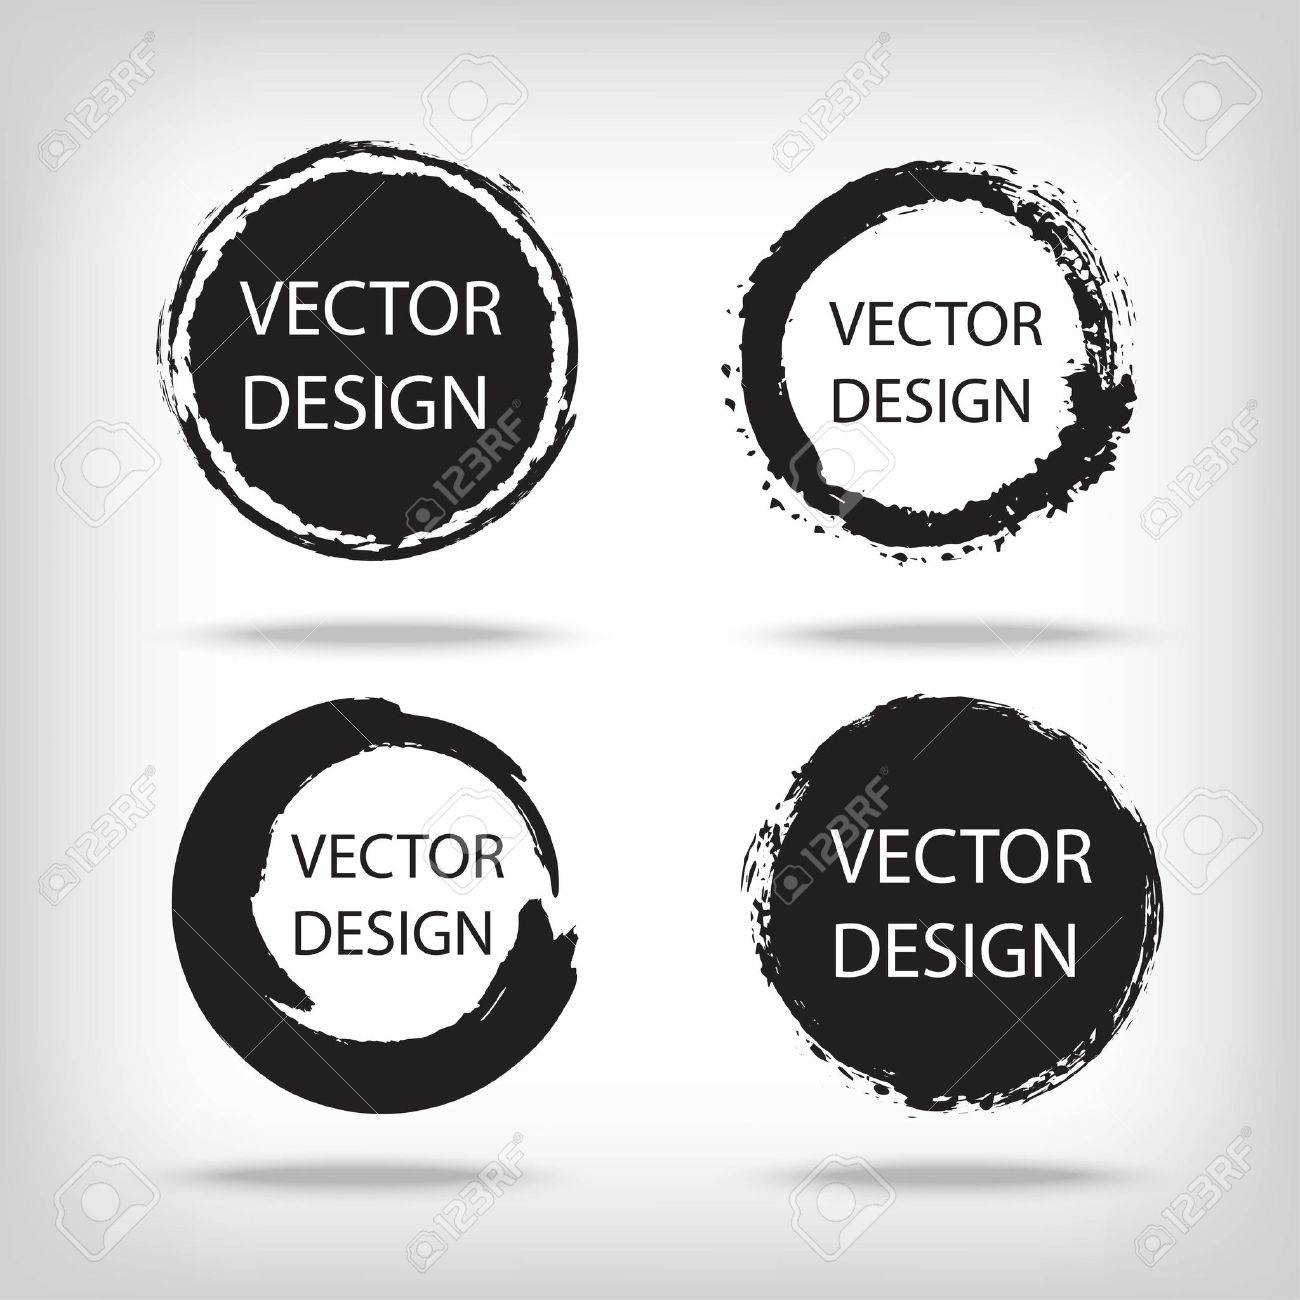 Artistic creative painted circle for label, branding. Black enso zen round. Vector illustration. - 64691969